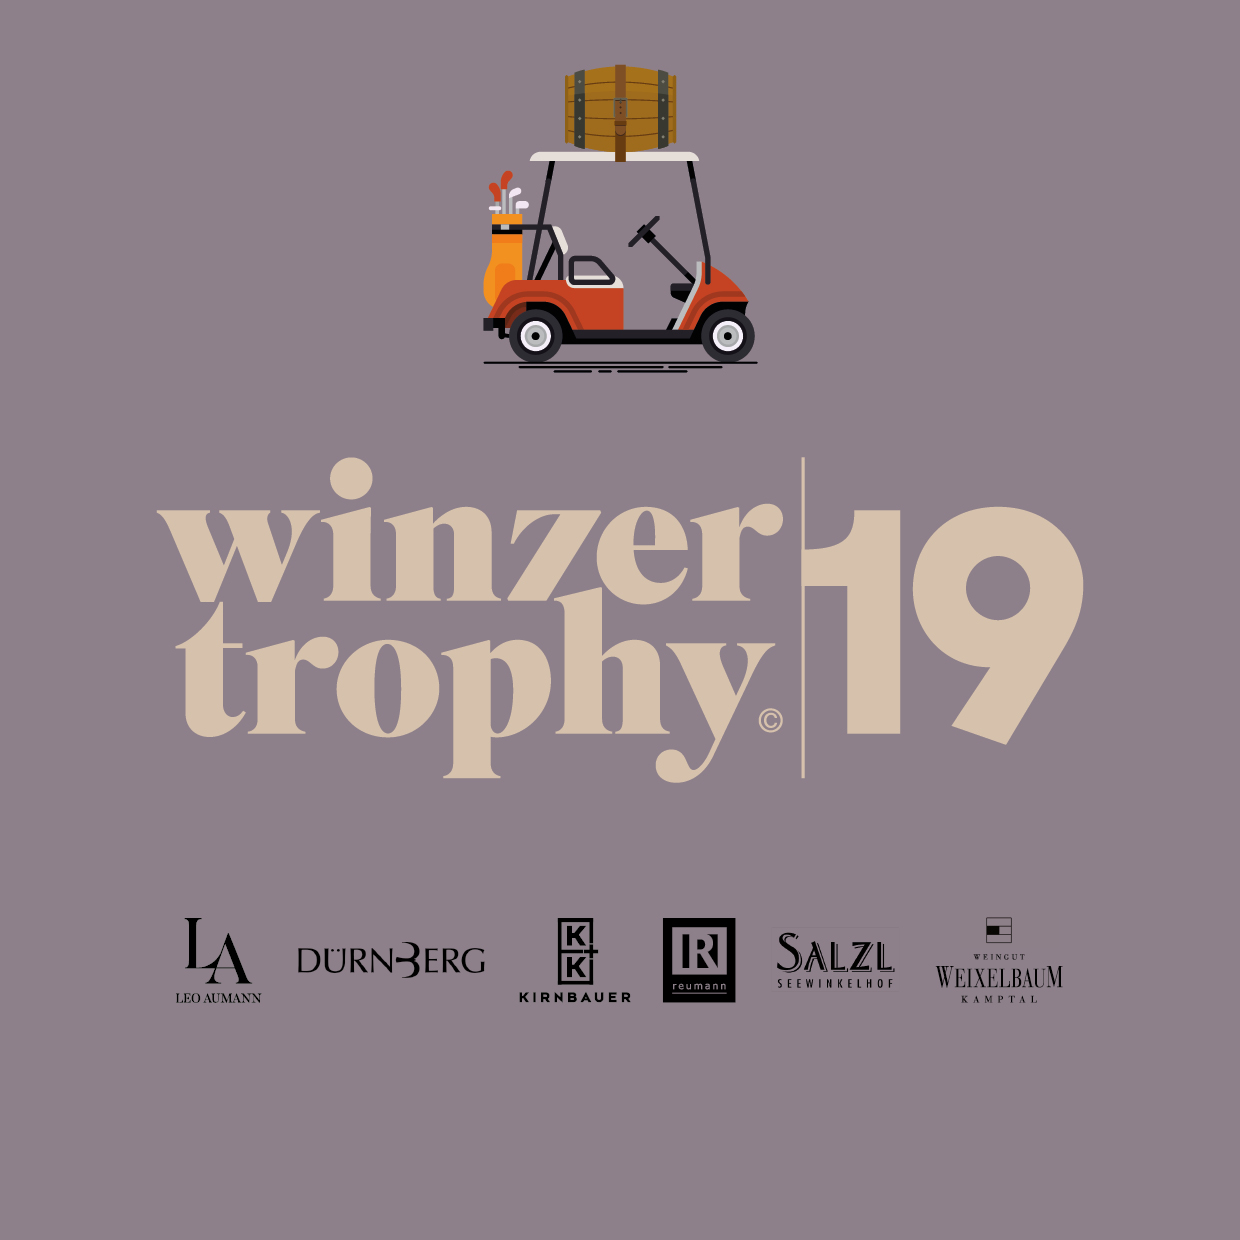 Winzertrophy19-Bad-Tatzmannsdorf-Visual-D